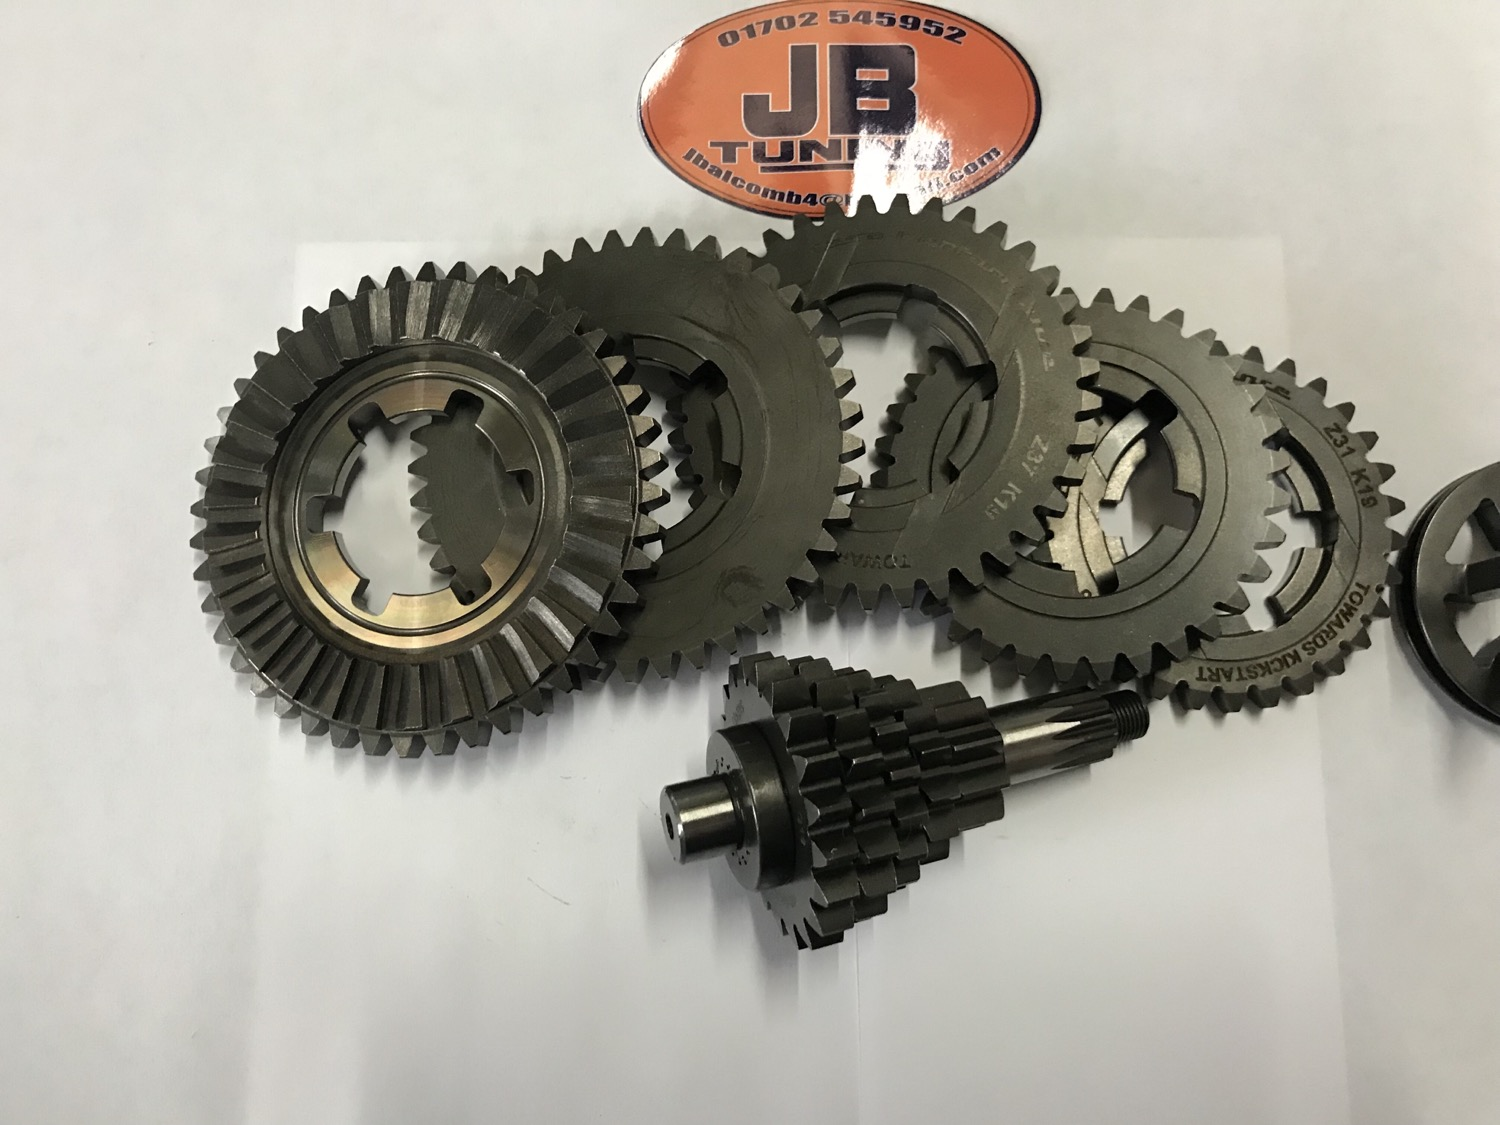 X808 Vega 5 Speed gearbox the ultimate for your tuned Luna line J Range